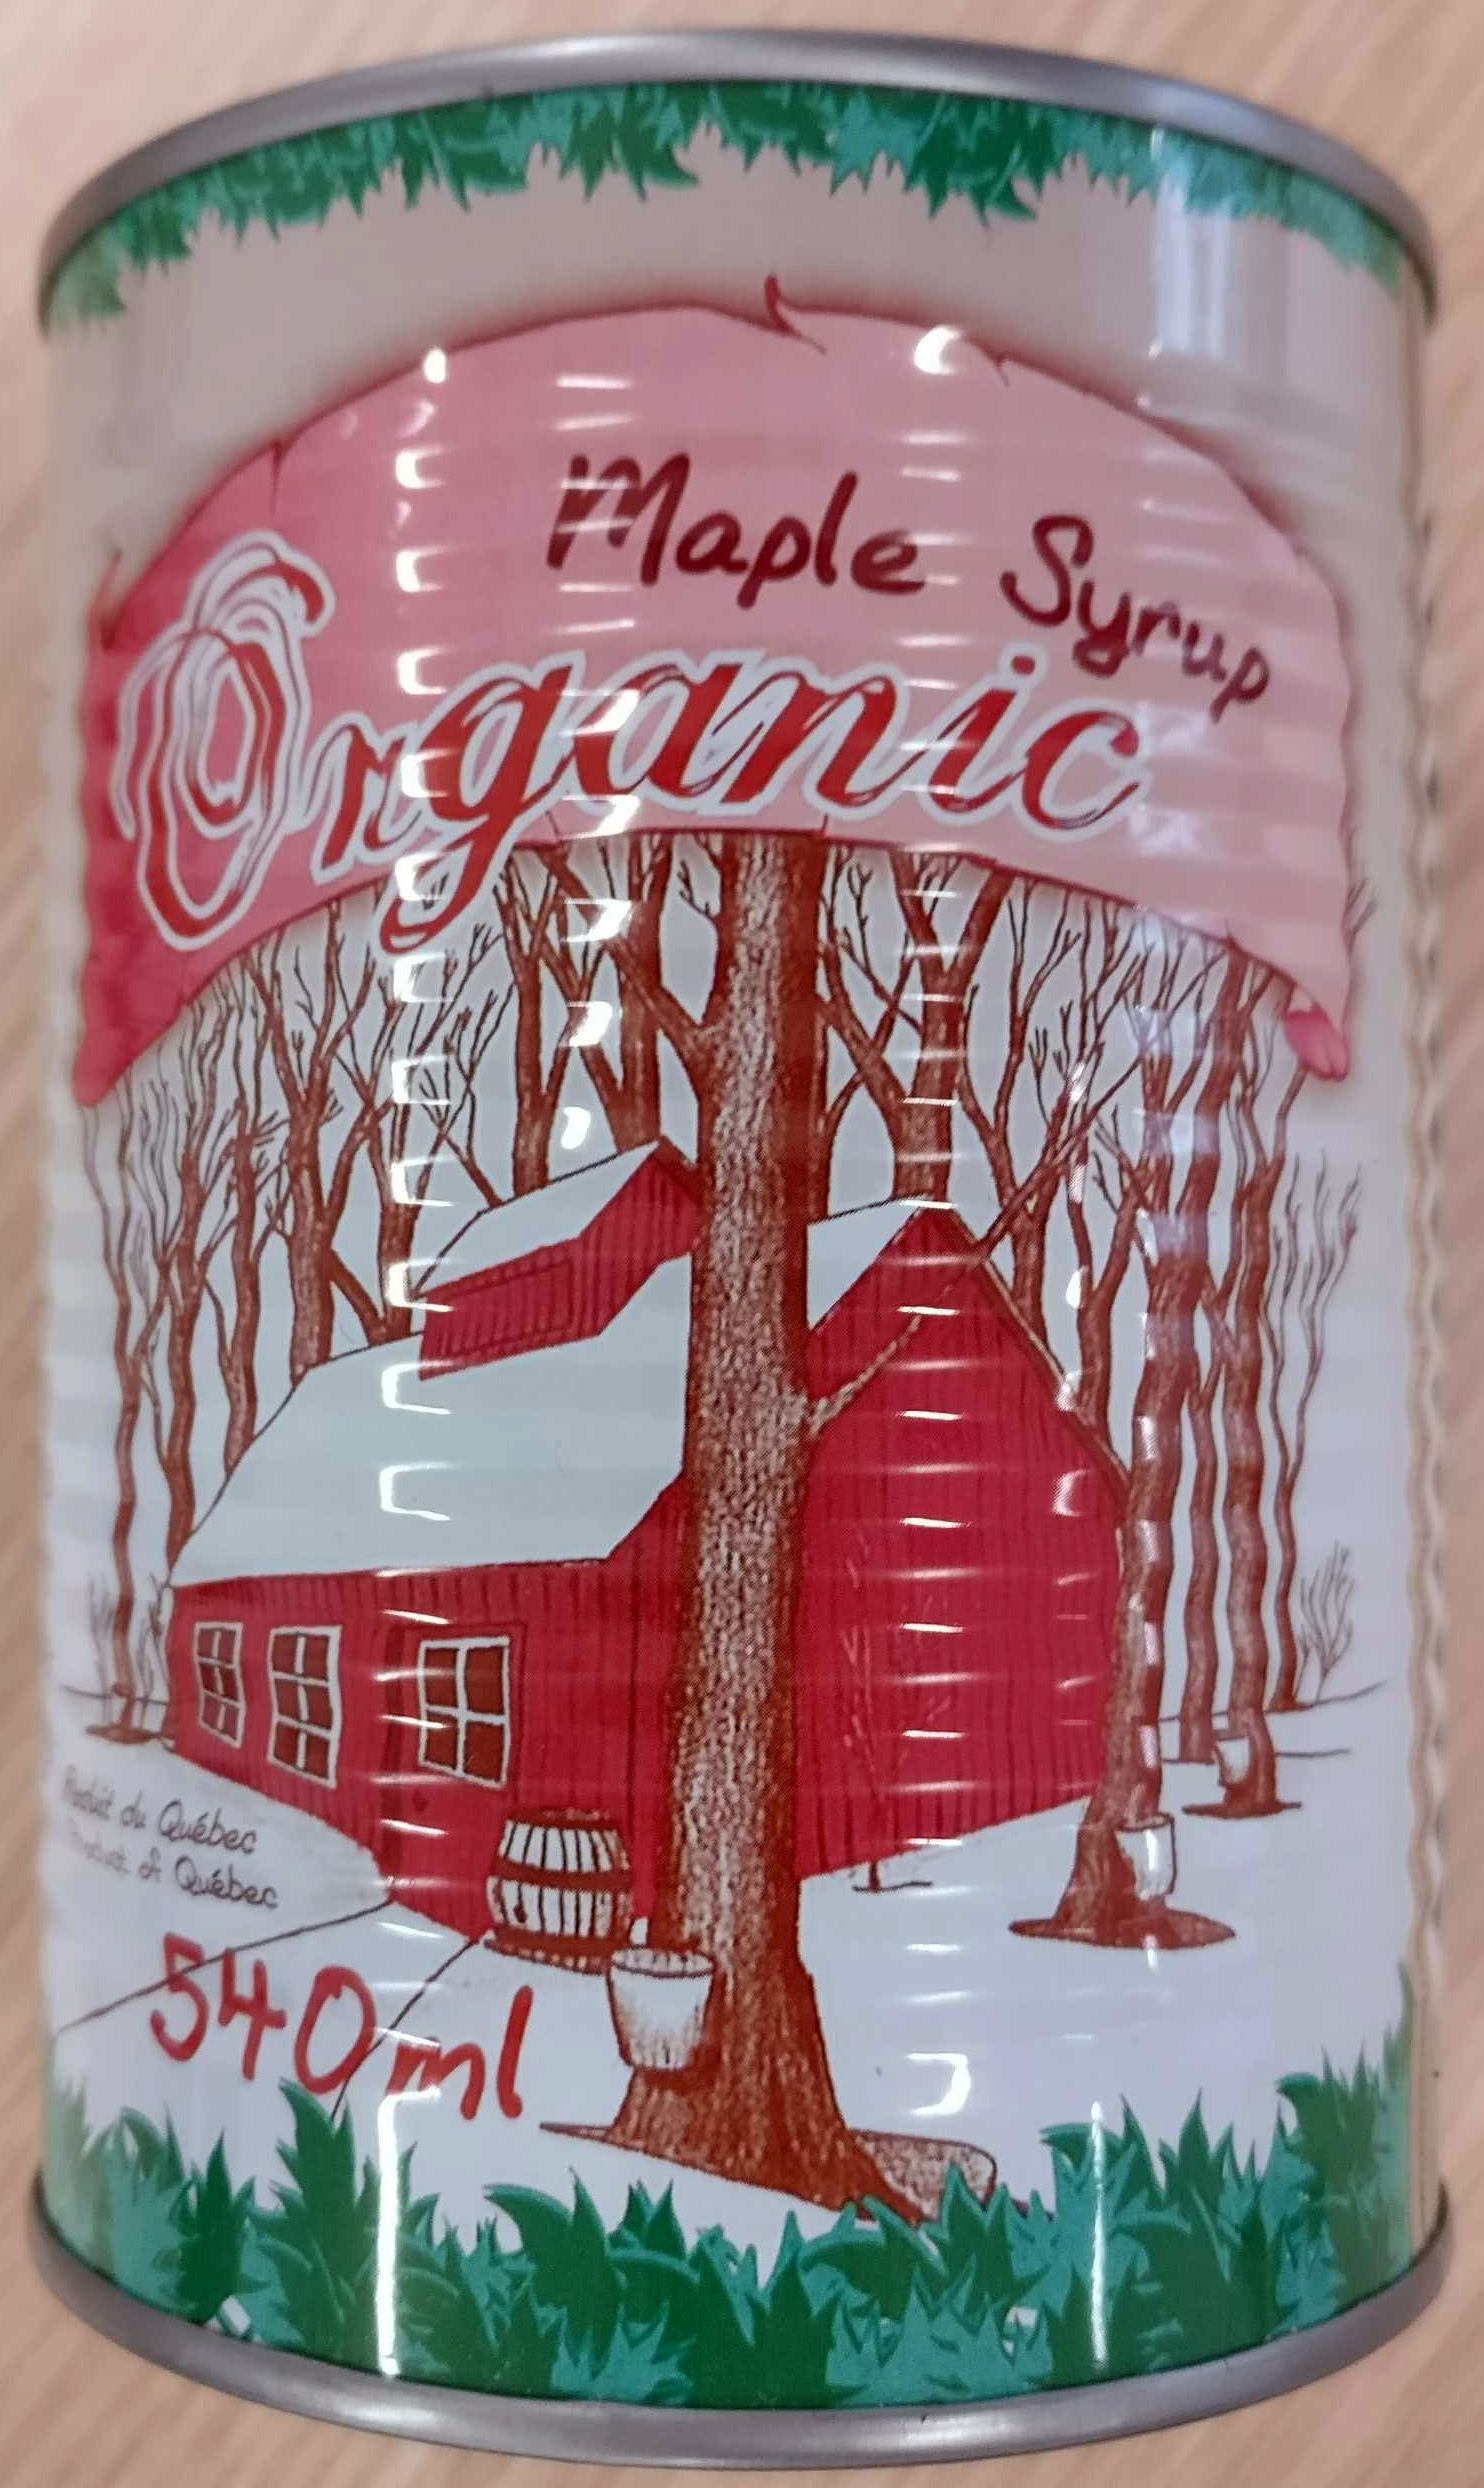 Maple Syrup Organic - Product - en